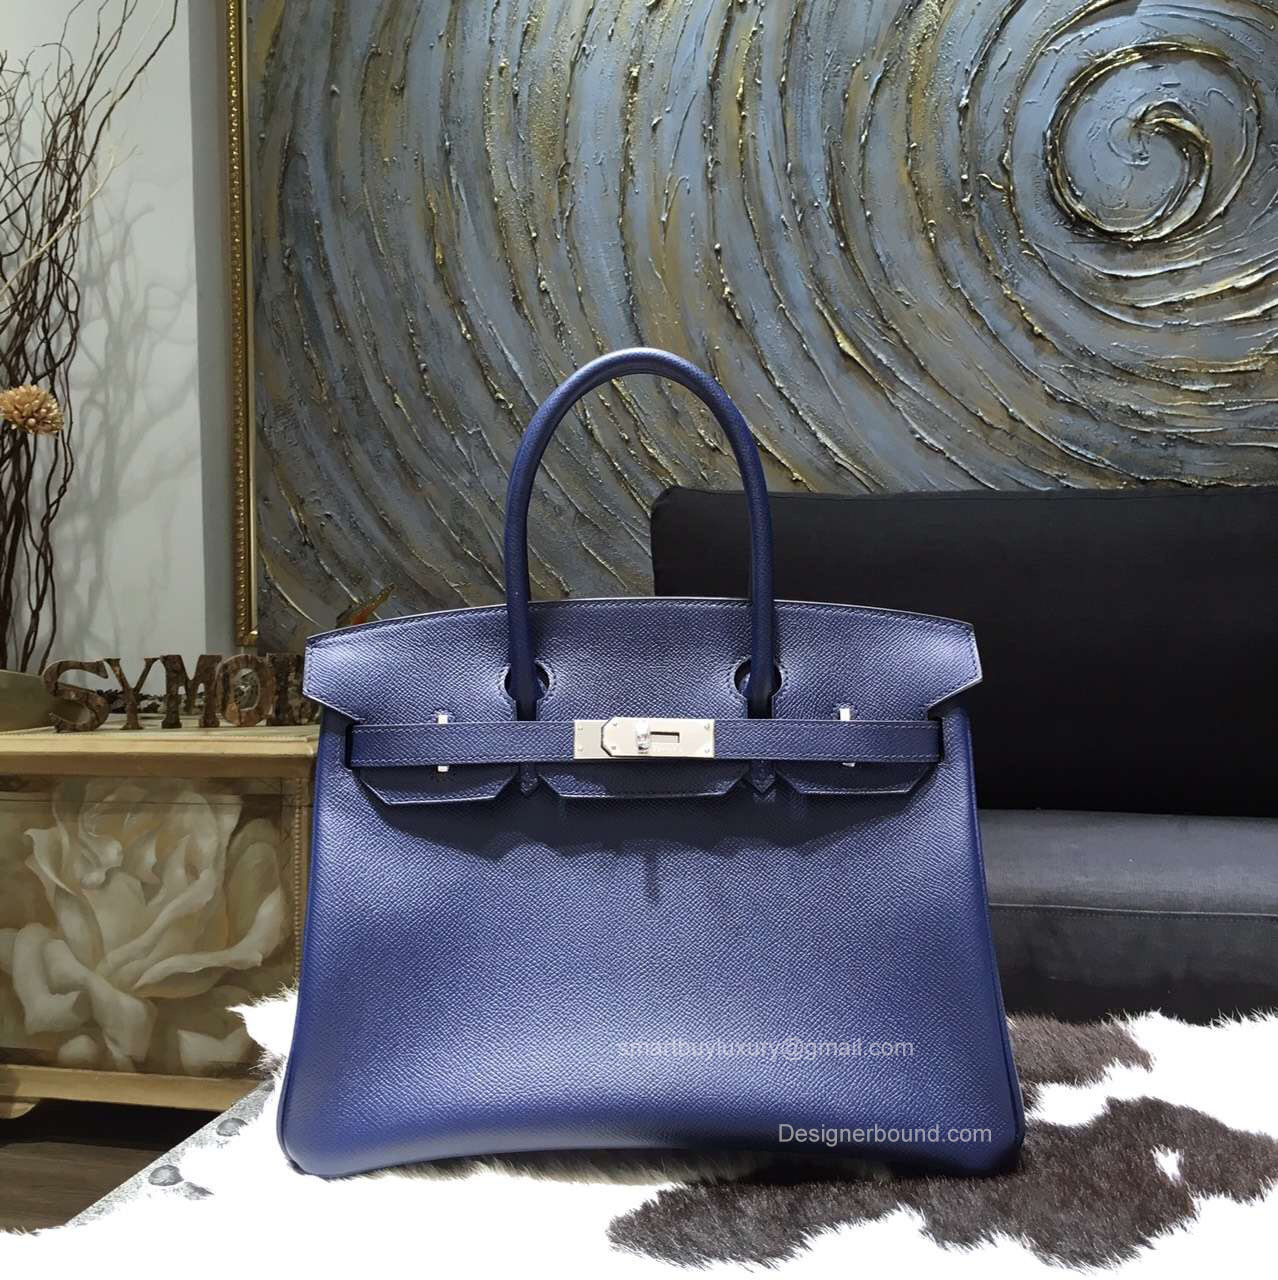 Hermes Birkin 35 Bag Blue Saphir Epsom Leather Handstitched Silver hw